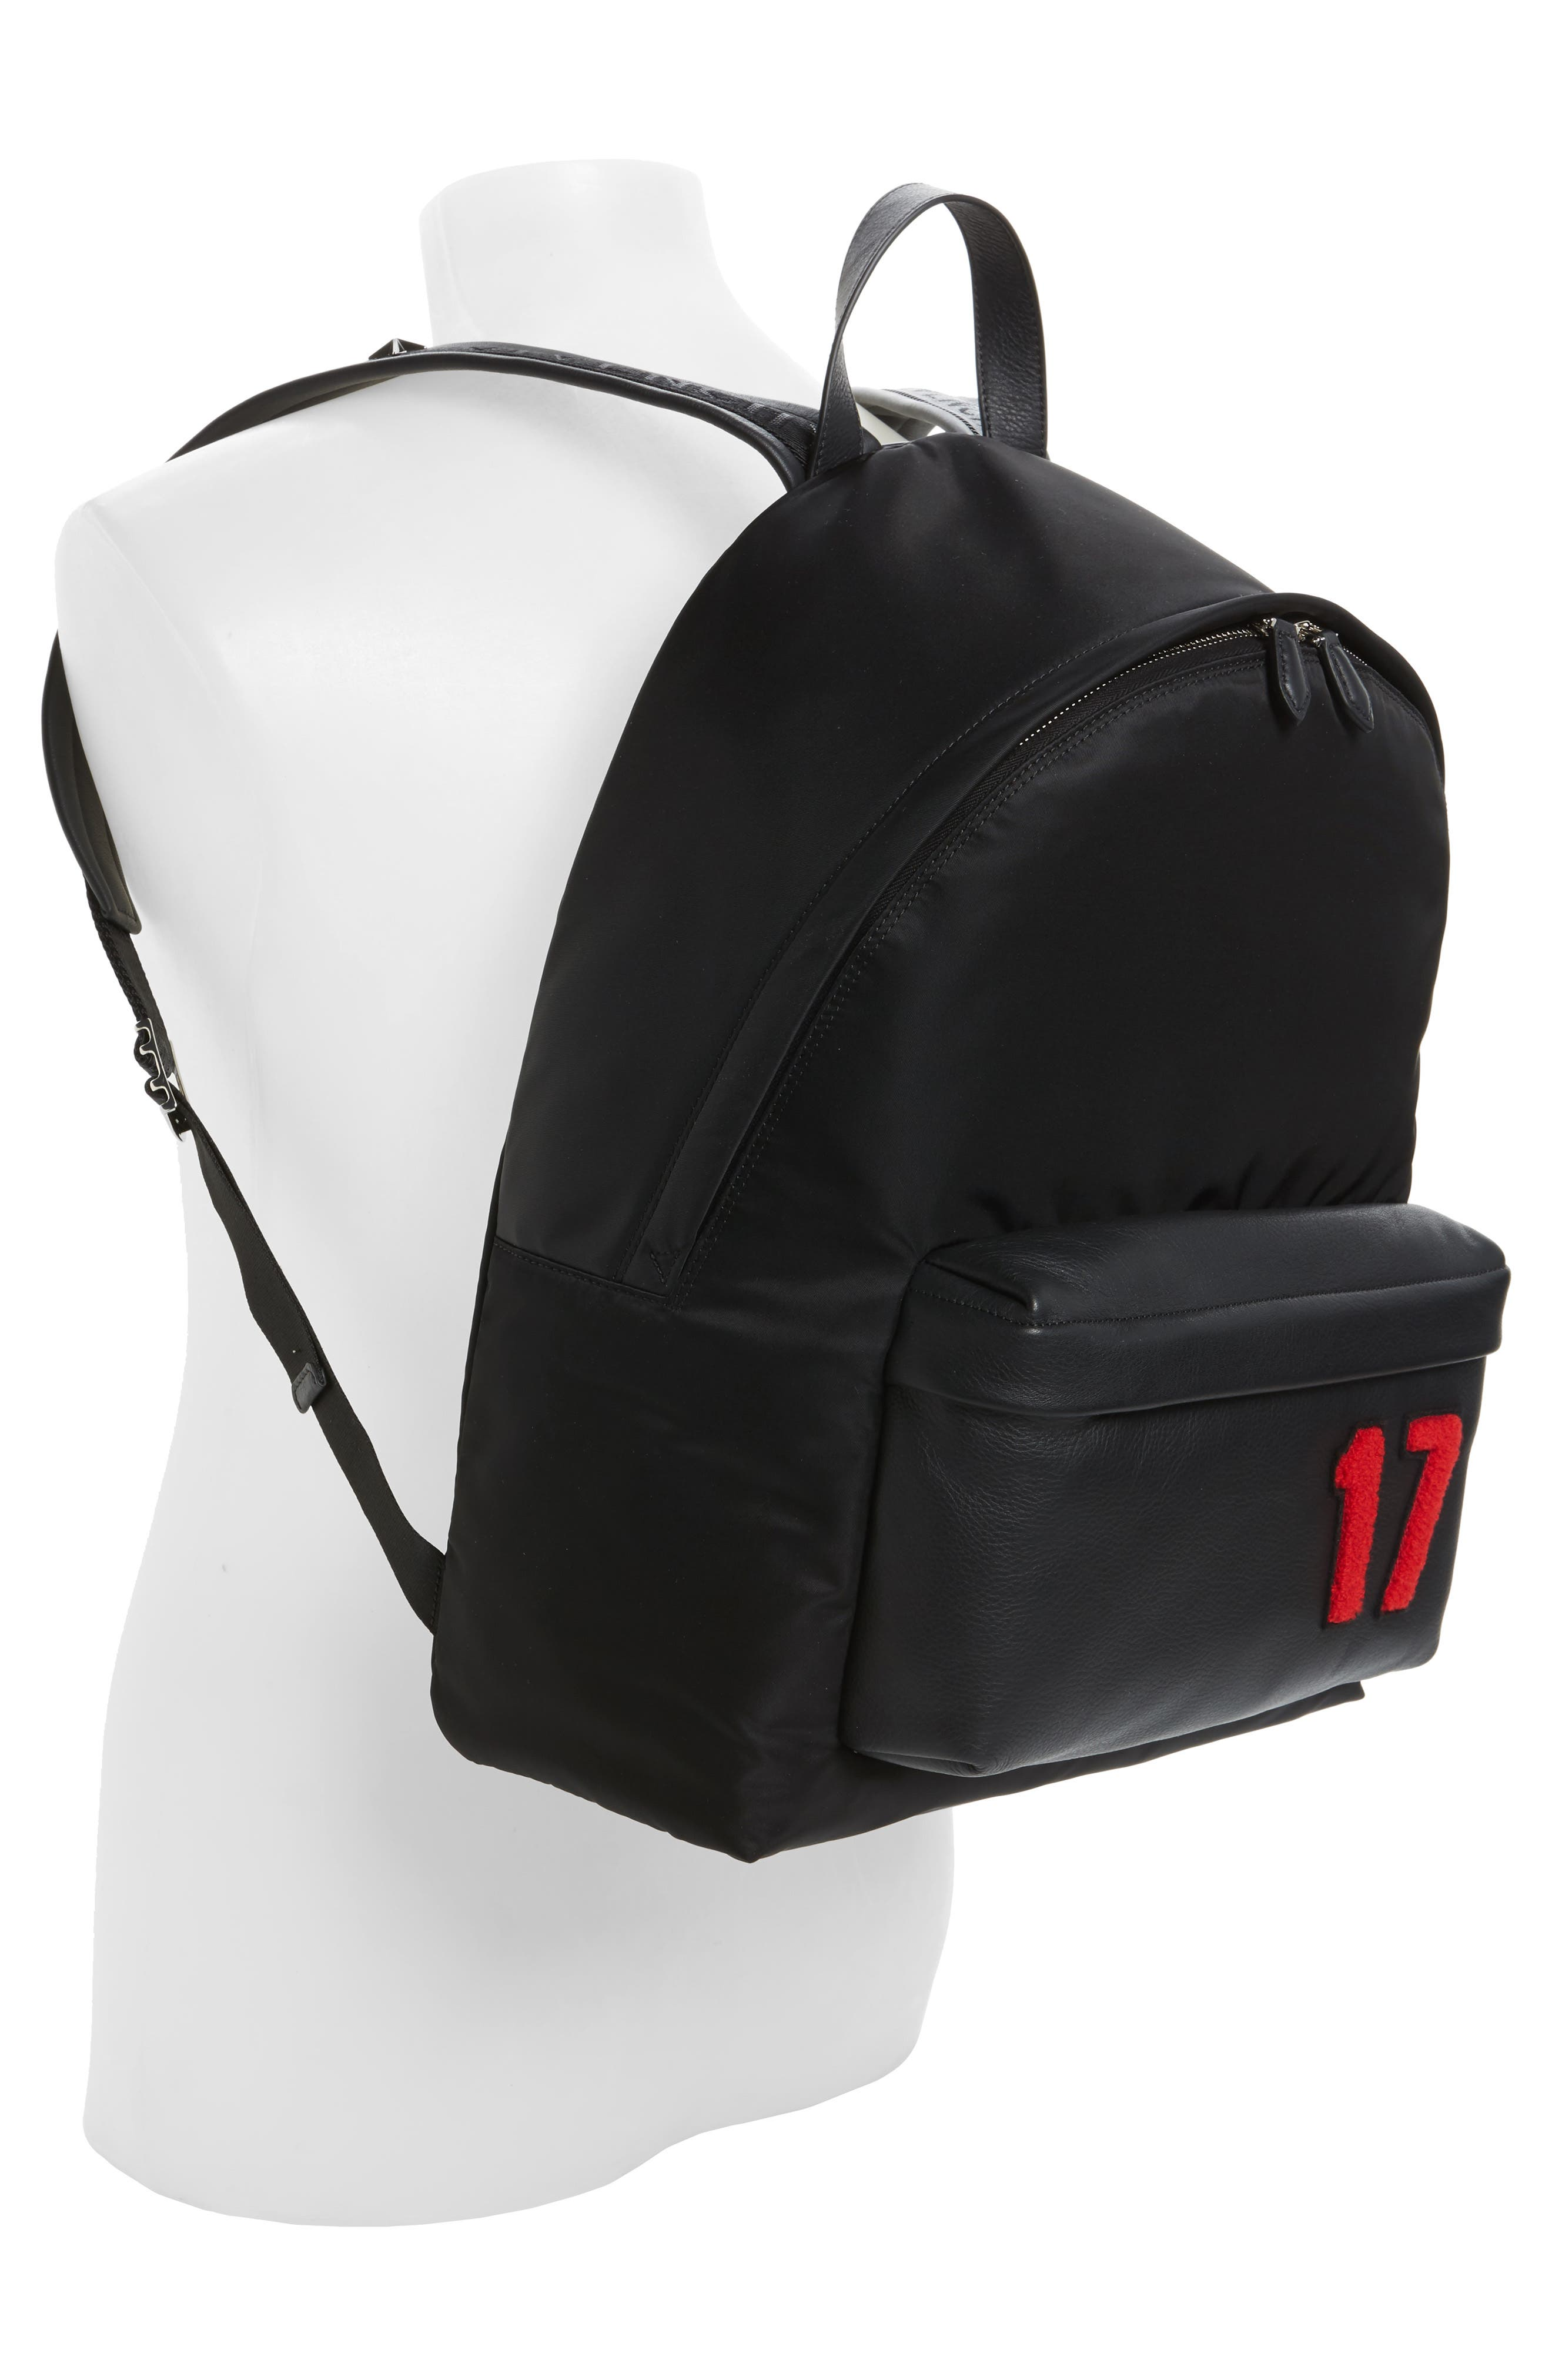 17 Patch Mix Media Backpack,                             Alternate thumbnail 2, color,                             009